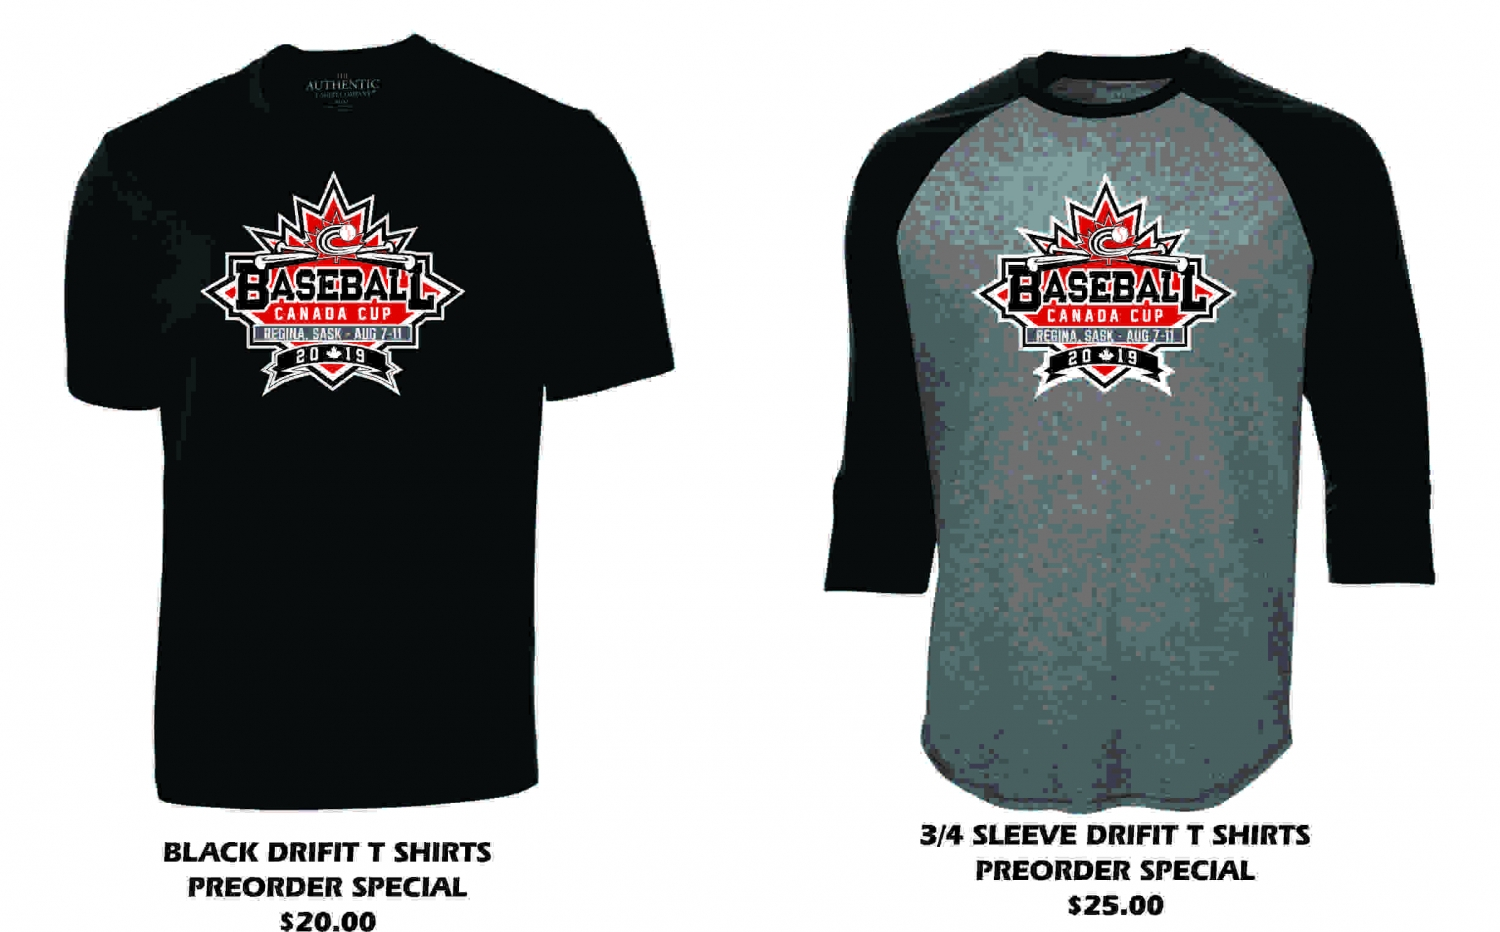 Pre Order Merchandise for 2019 Baseball Canada Cup!